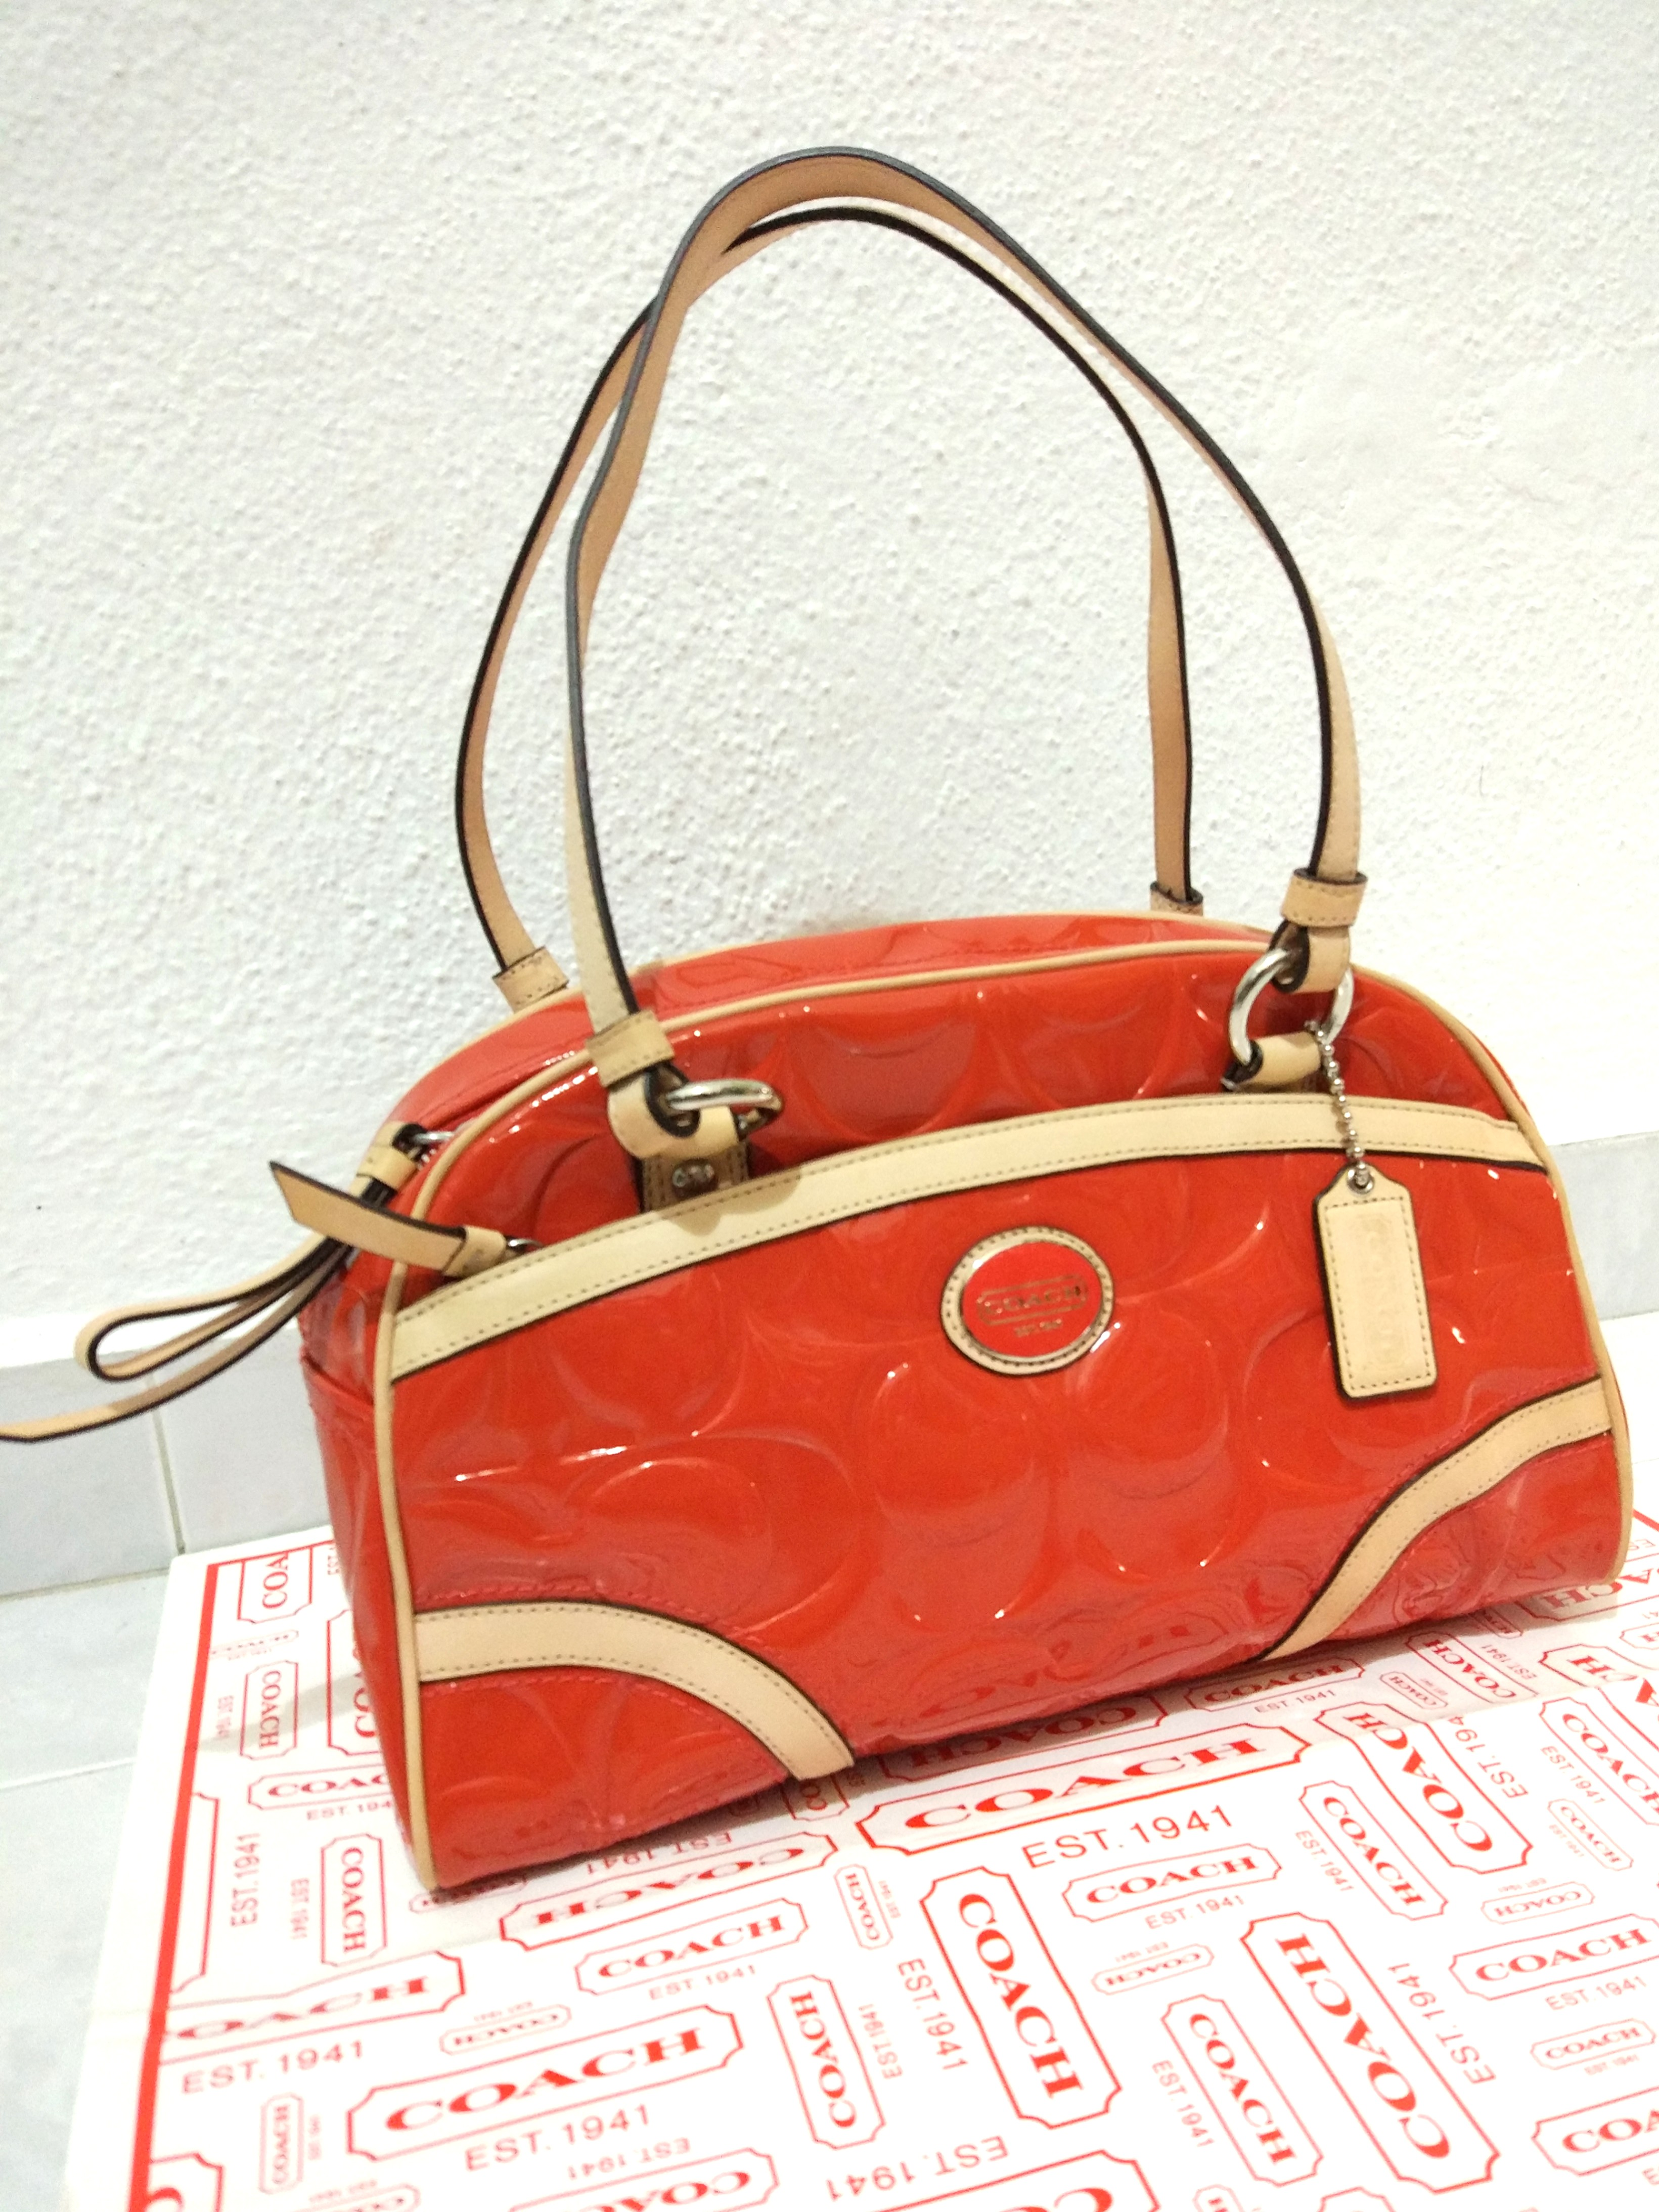 Authentic Coach Bag Tote F20065 Peyton Embossed Patent Leather Satchel Handbag Luxury Bags Wallets On Carou